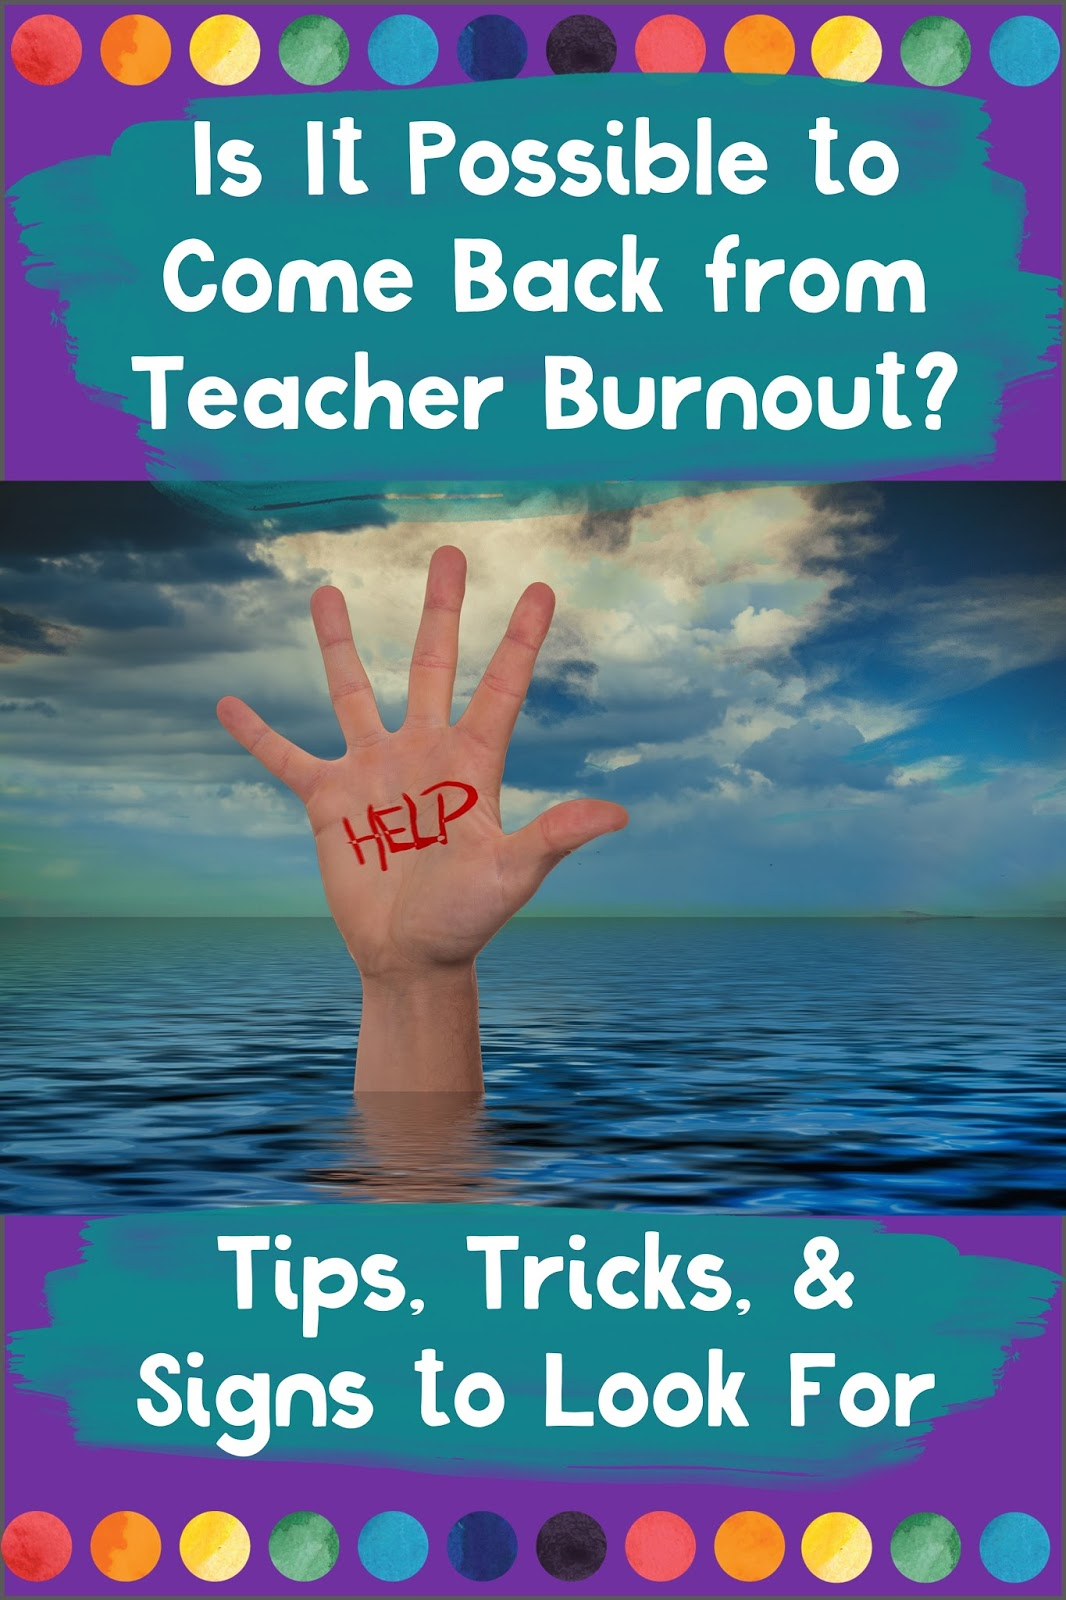 Teacher Burnout Warning Signs You Need To Watch Out For. Chic Decals. Wolf Signs Of Stroke. Small Circle Stickers. Gif Transparent Stickers. Cherokee Signs Of Stroke. Mosaic Art Murals. Lash Symbol Signs. Mountain Forest Murals